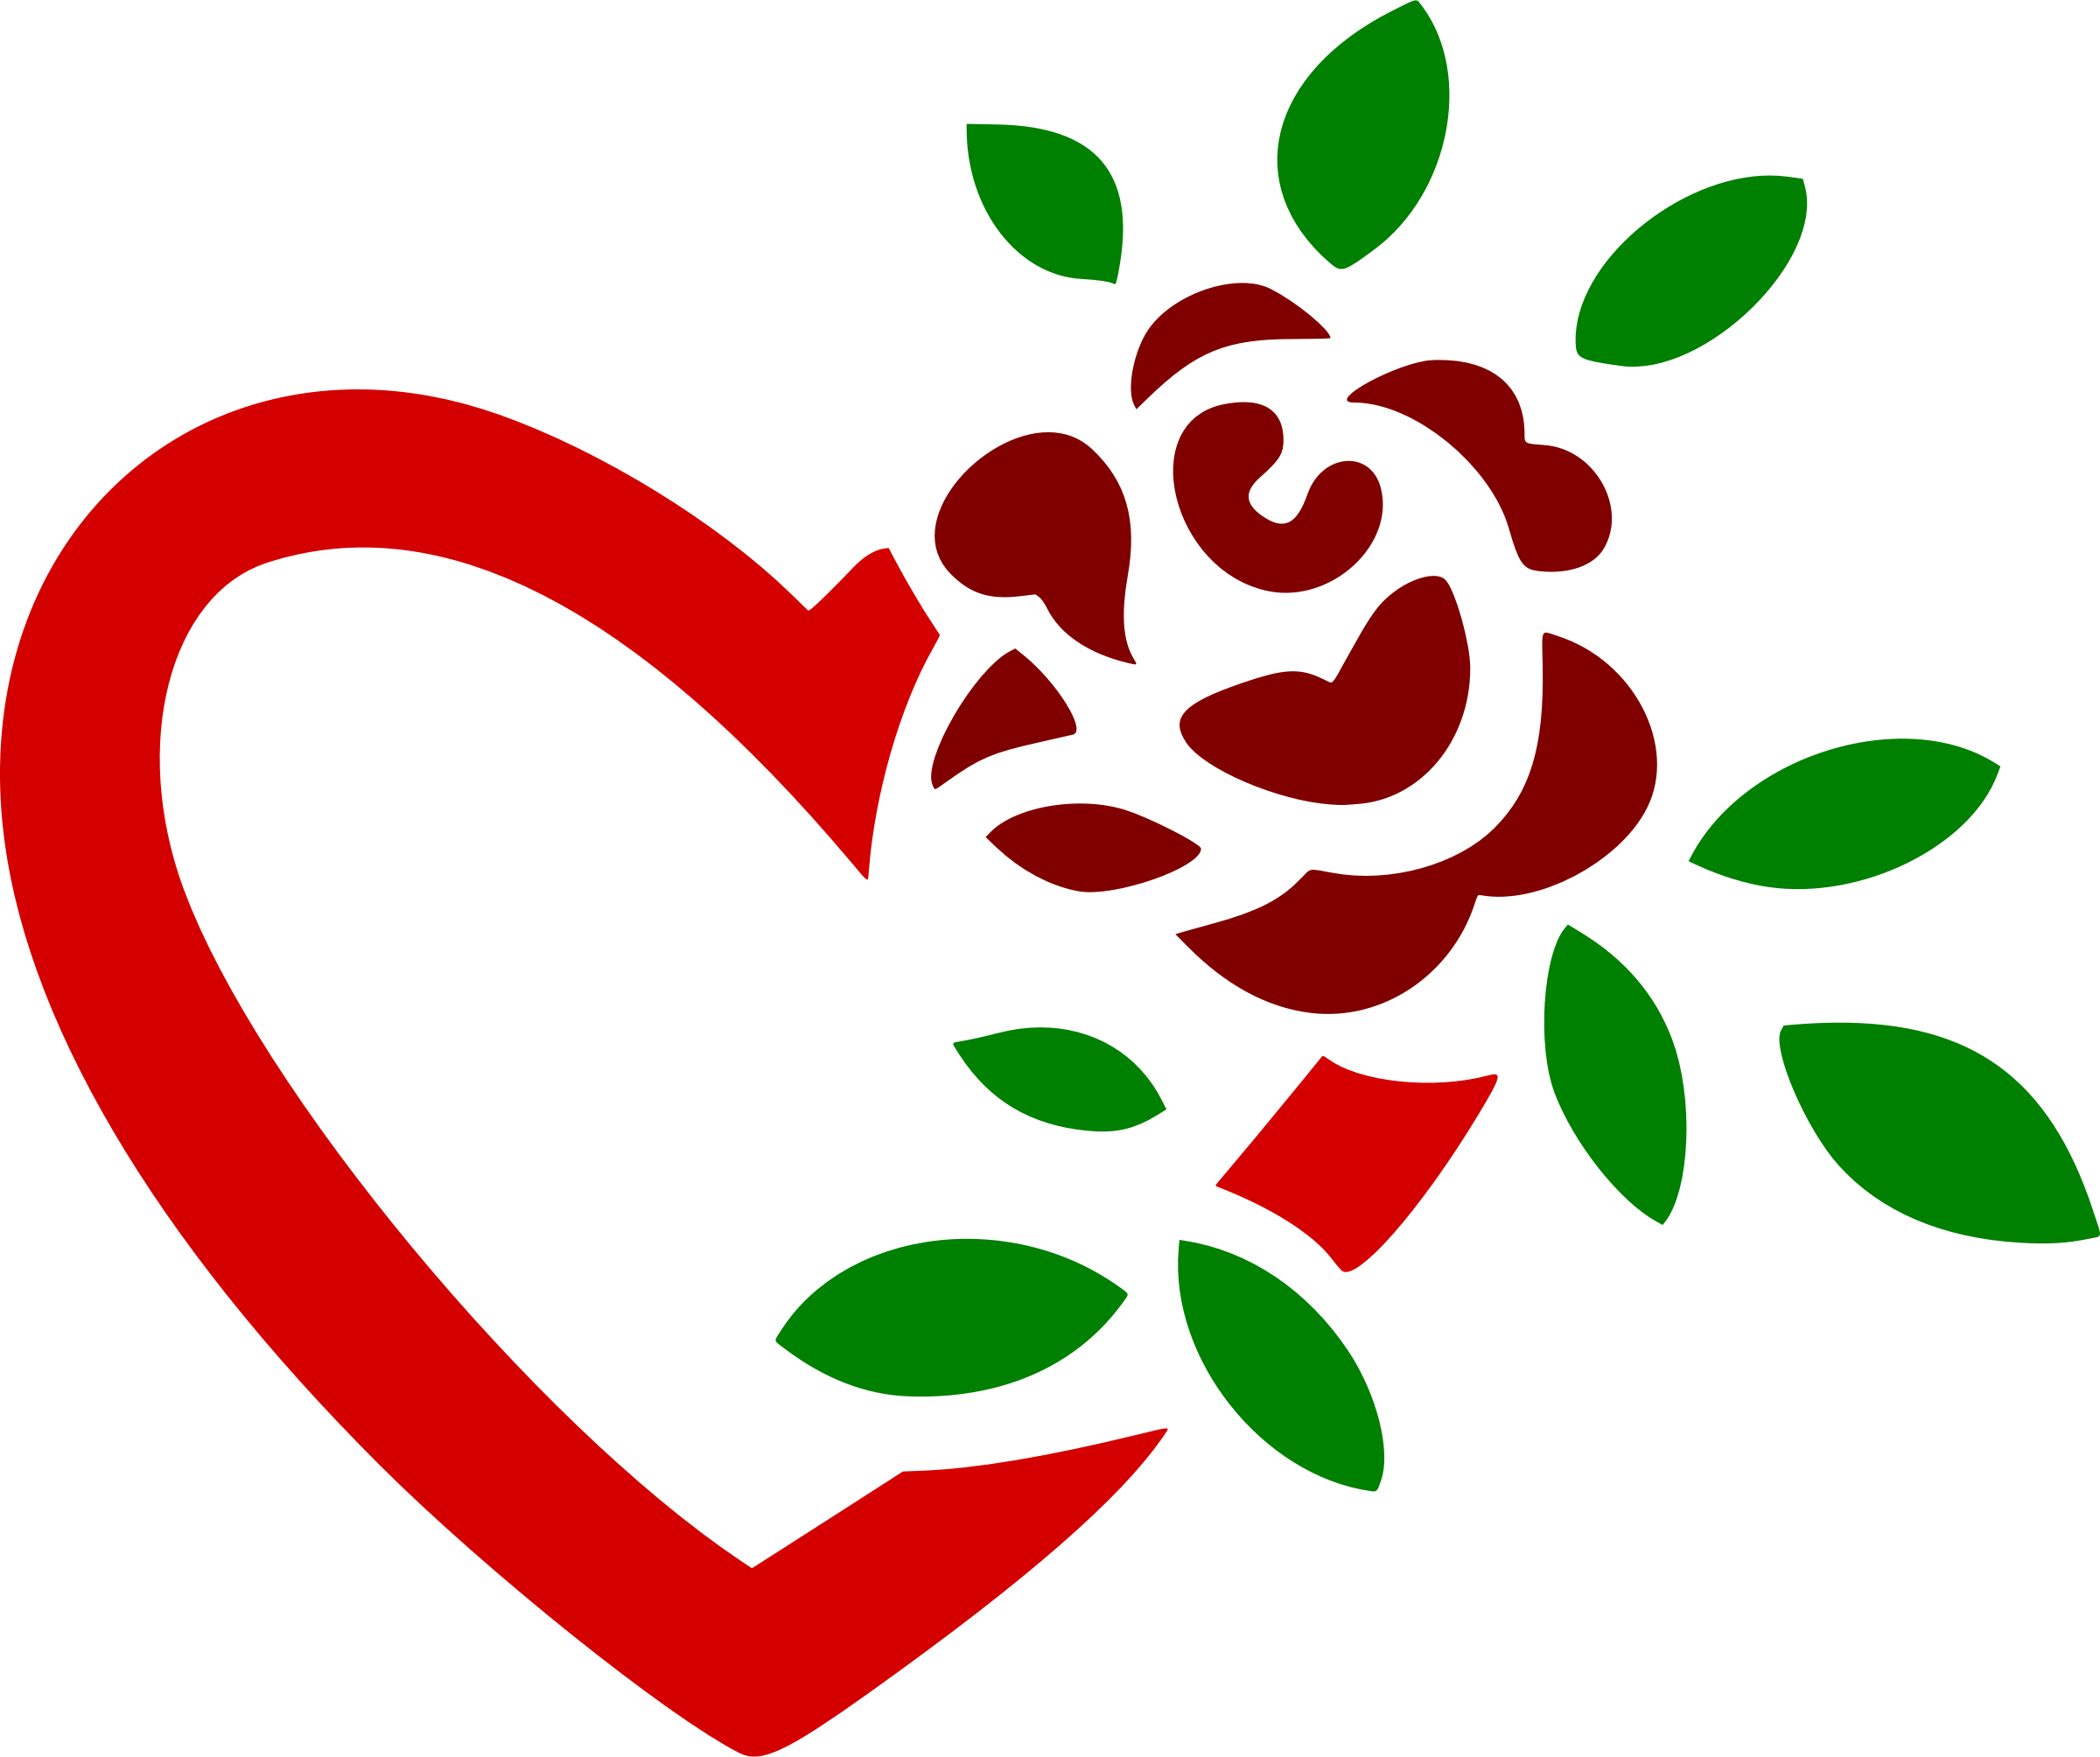 Clipart science heart. Rose and colour icons